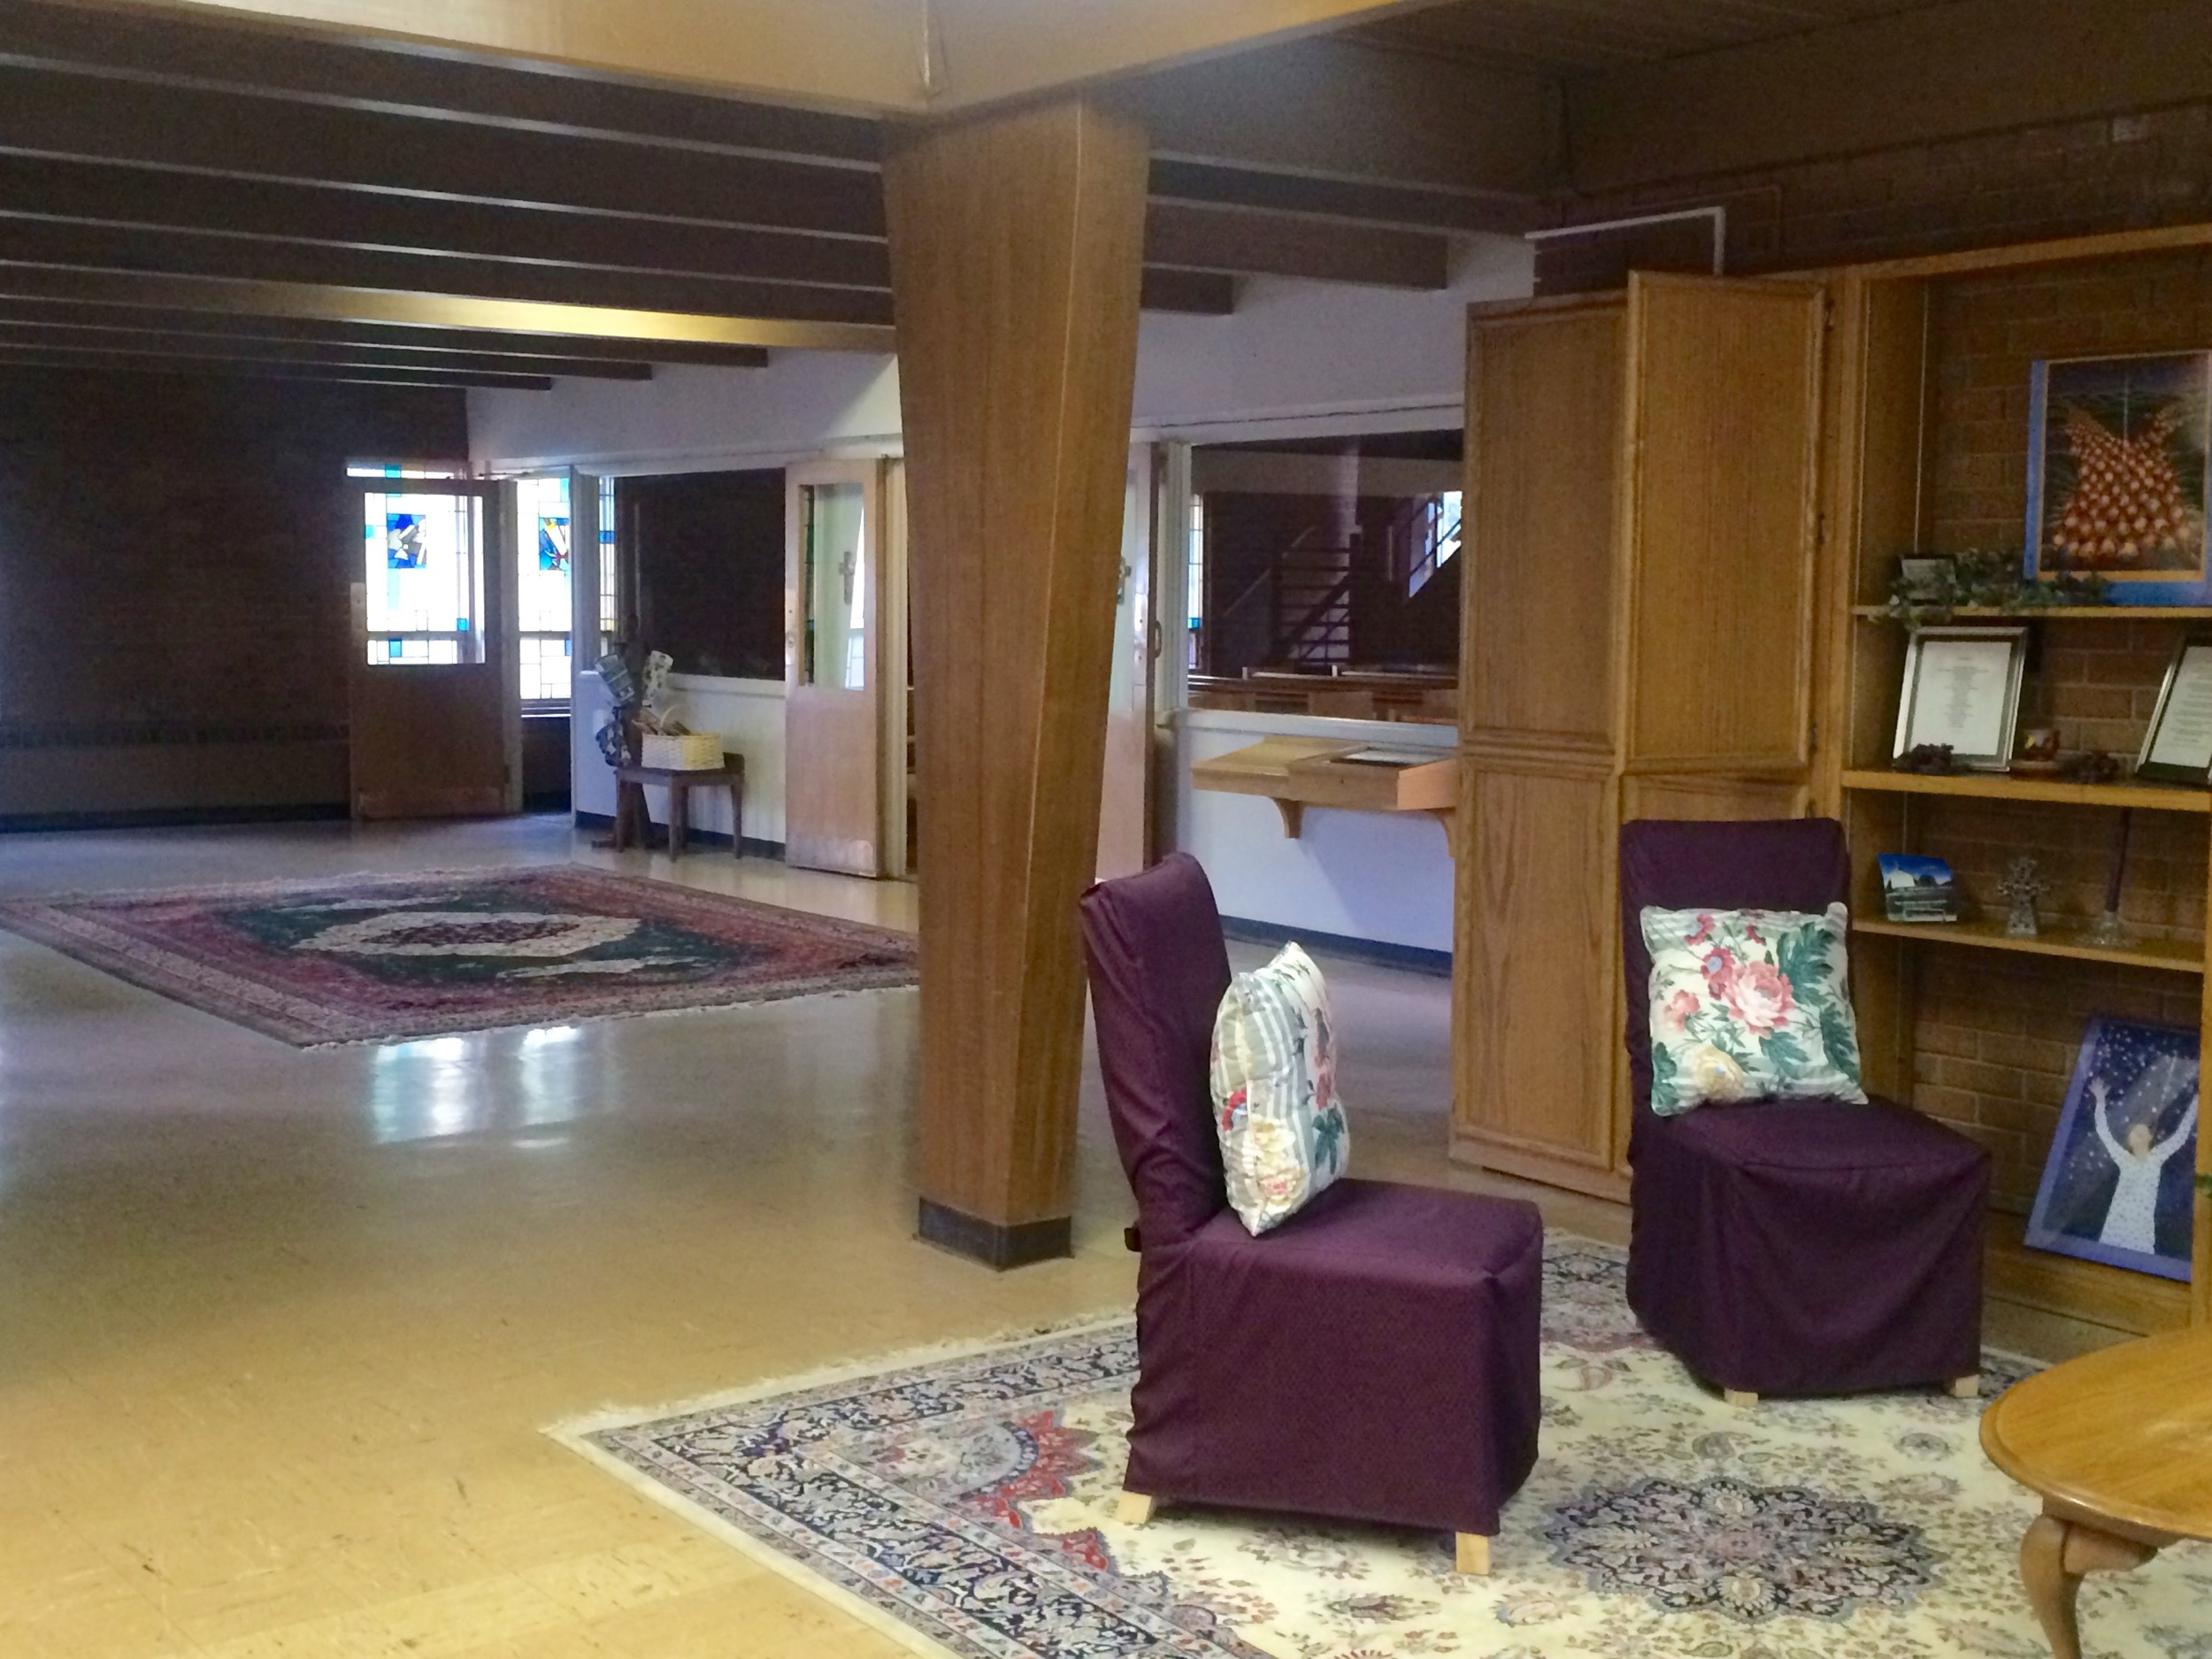 The Narthex has seating as well as big windows so you can see into the sanctuary.